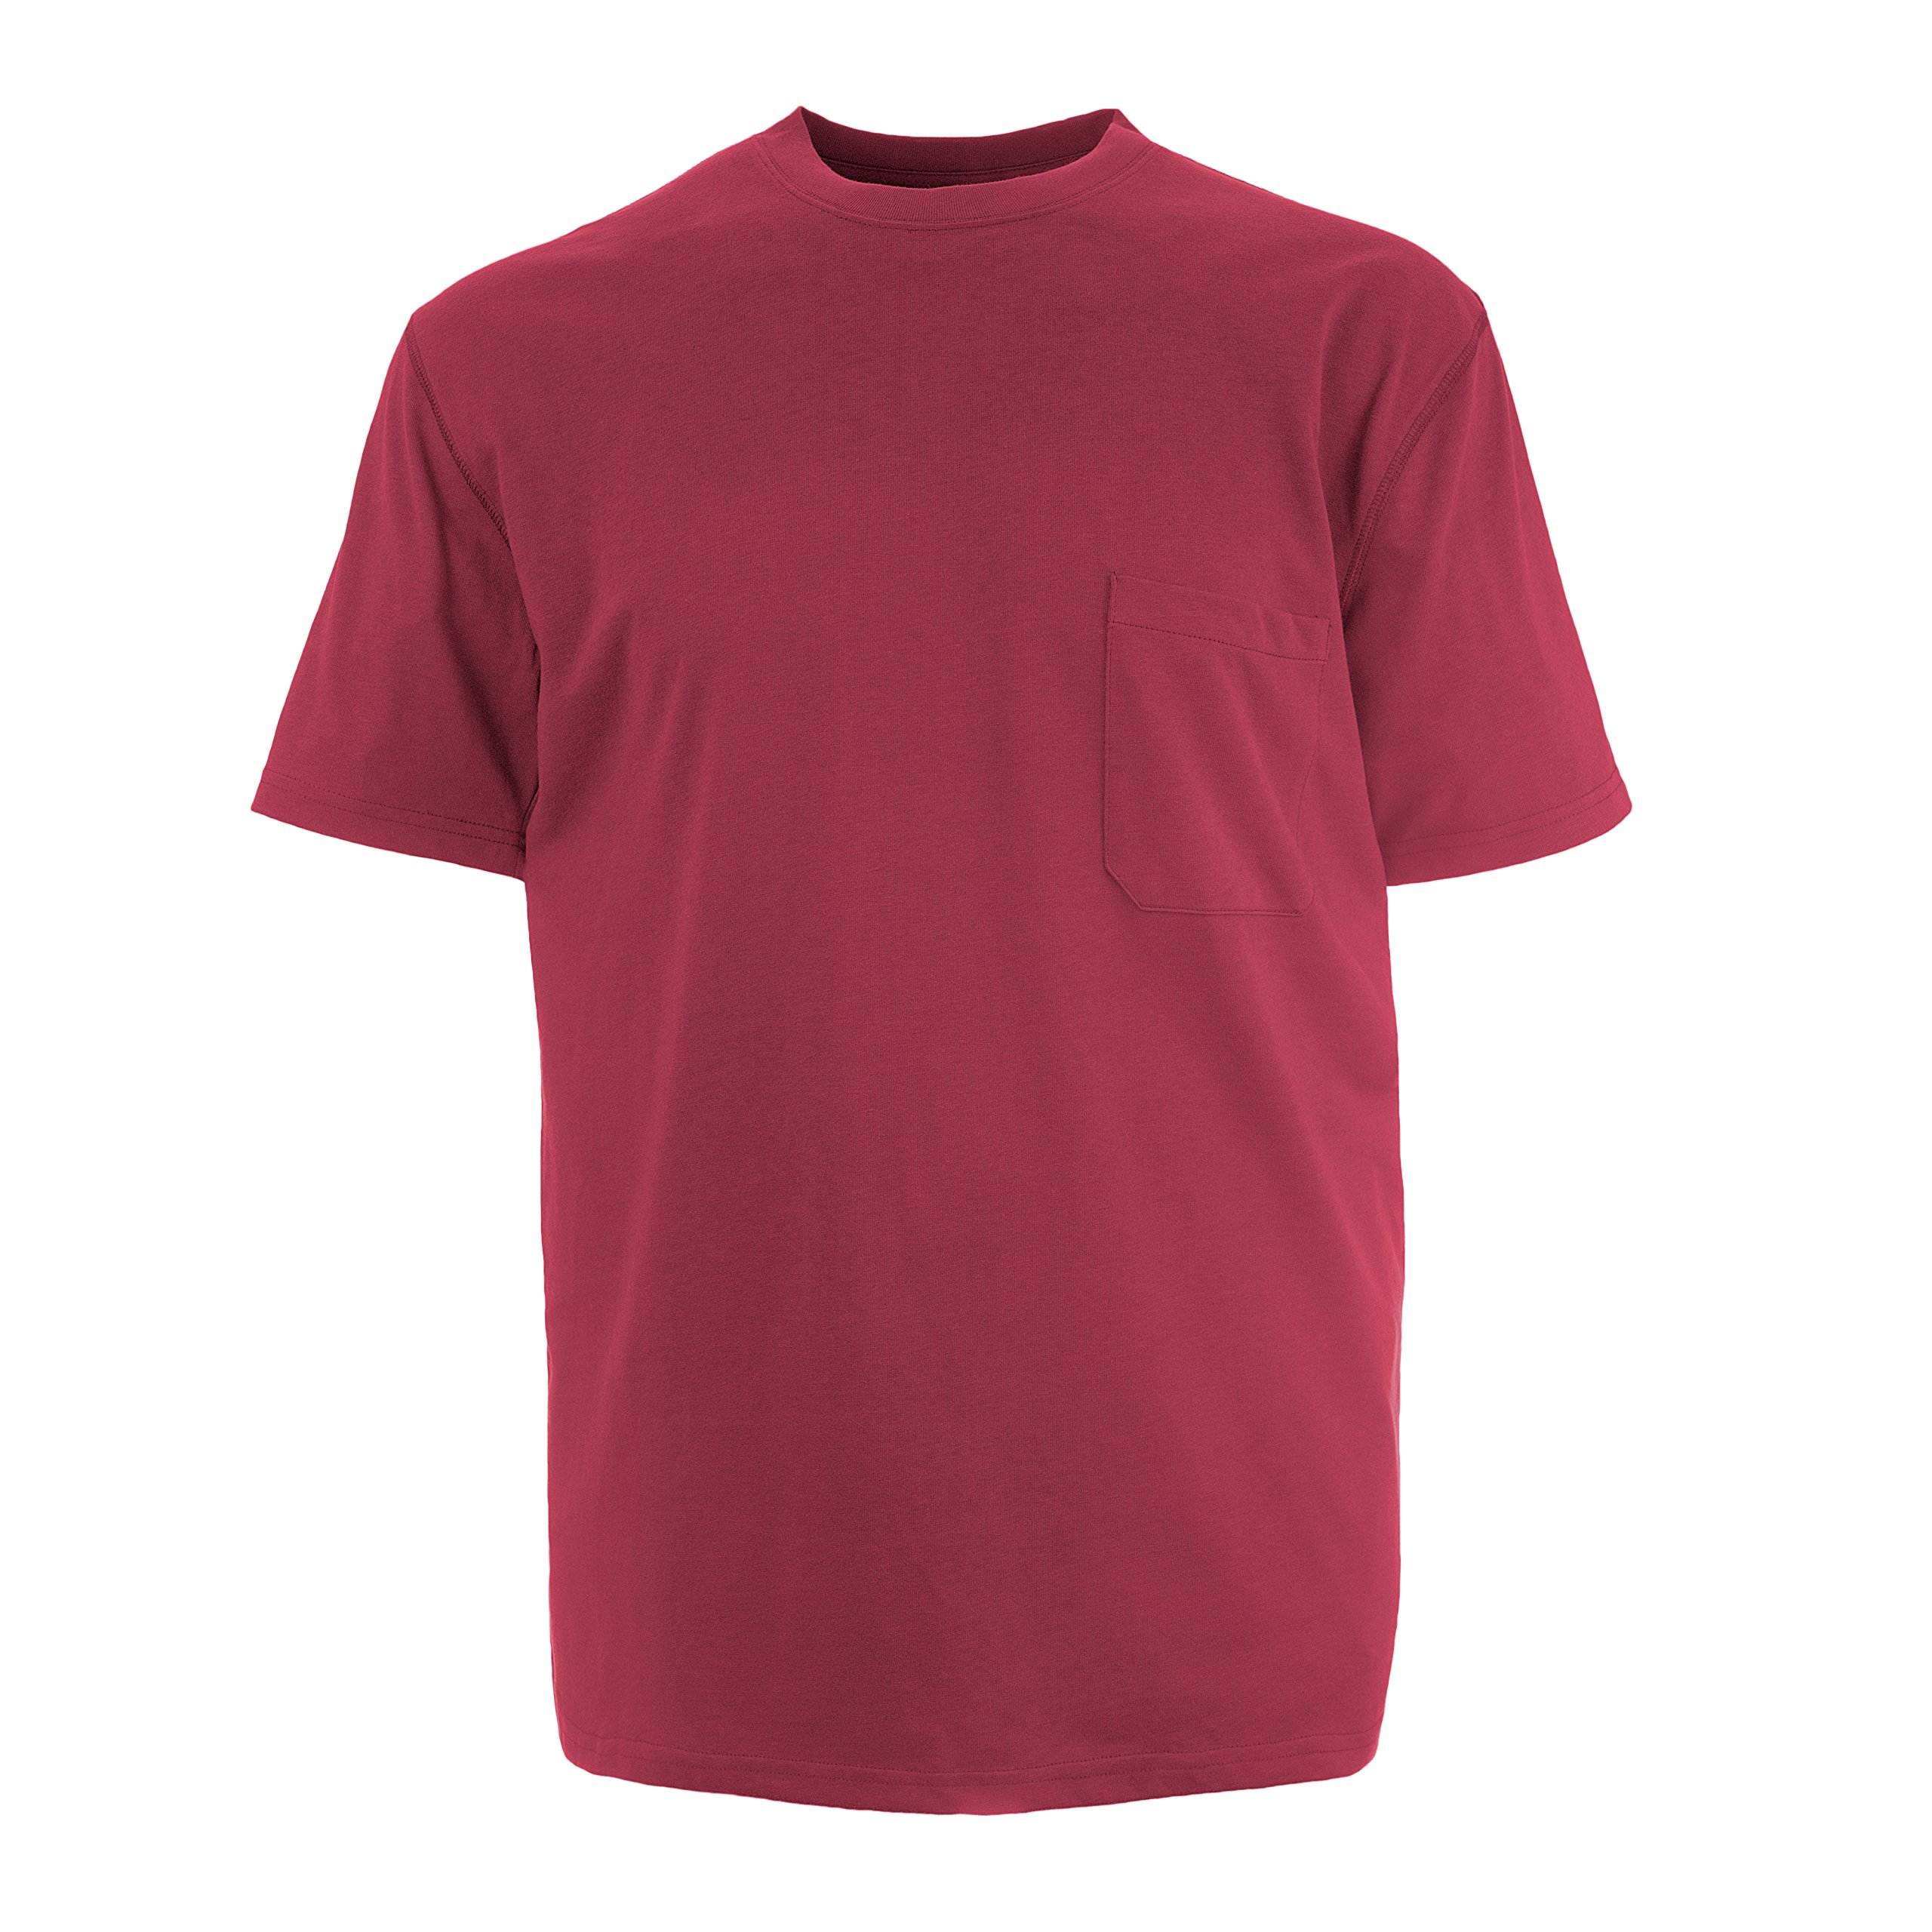 Insect Shield Men's UPF Dri-Balance Short Sleeve Pocket Tee, Burgundy, X-Large by Insect Shield